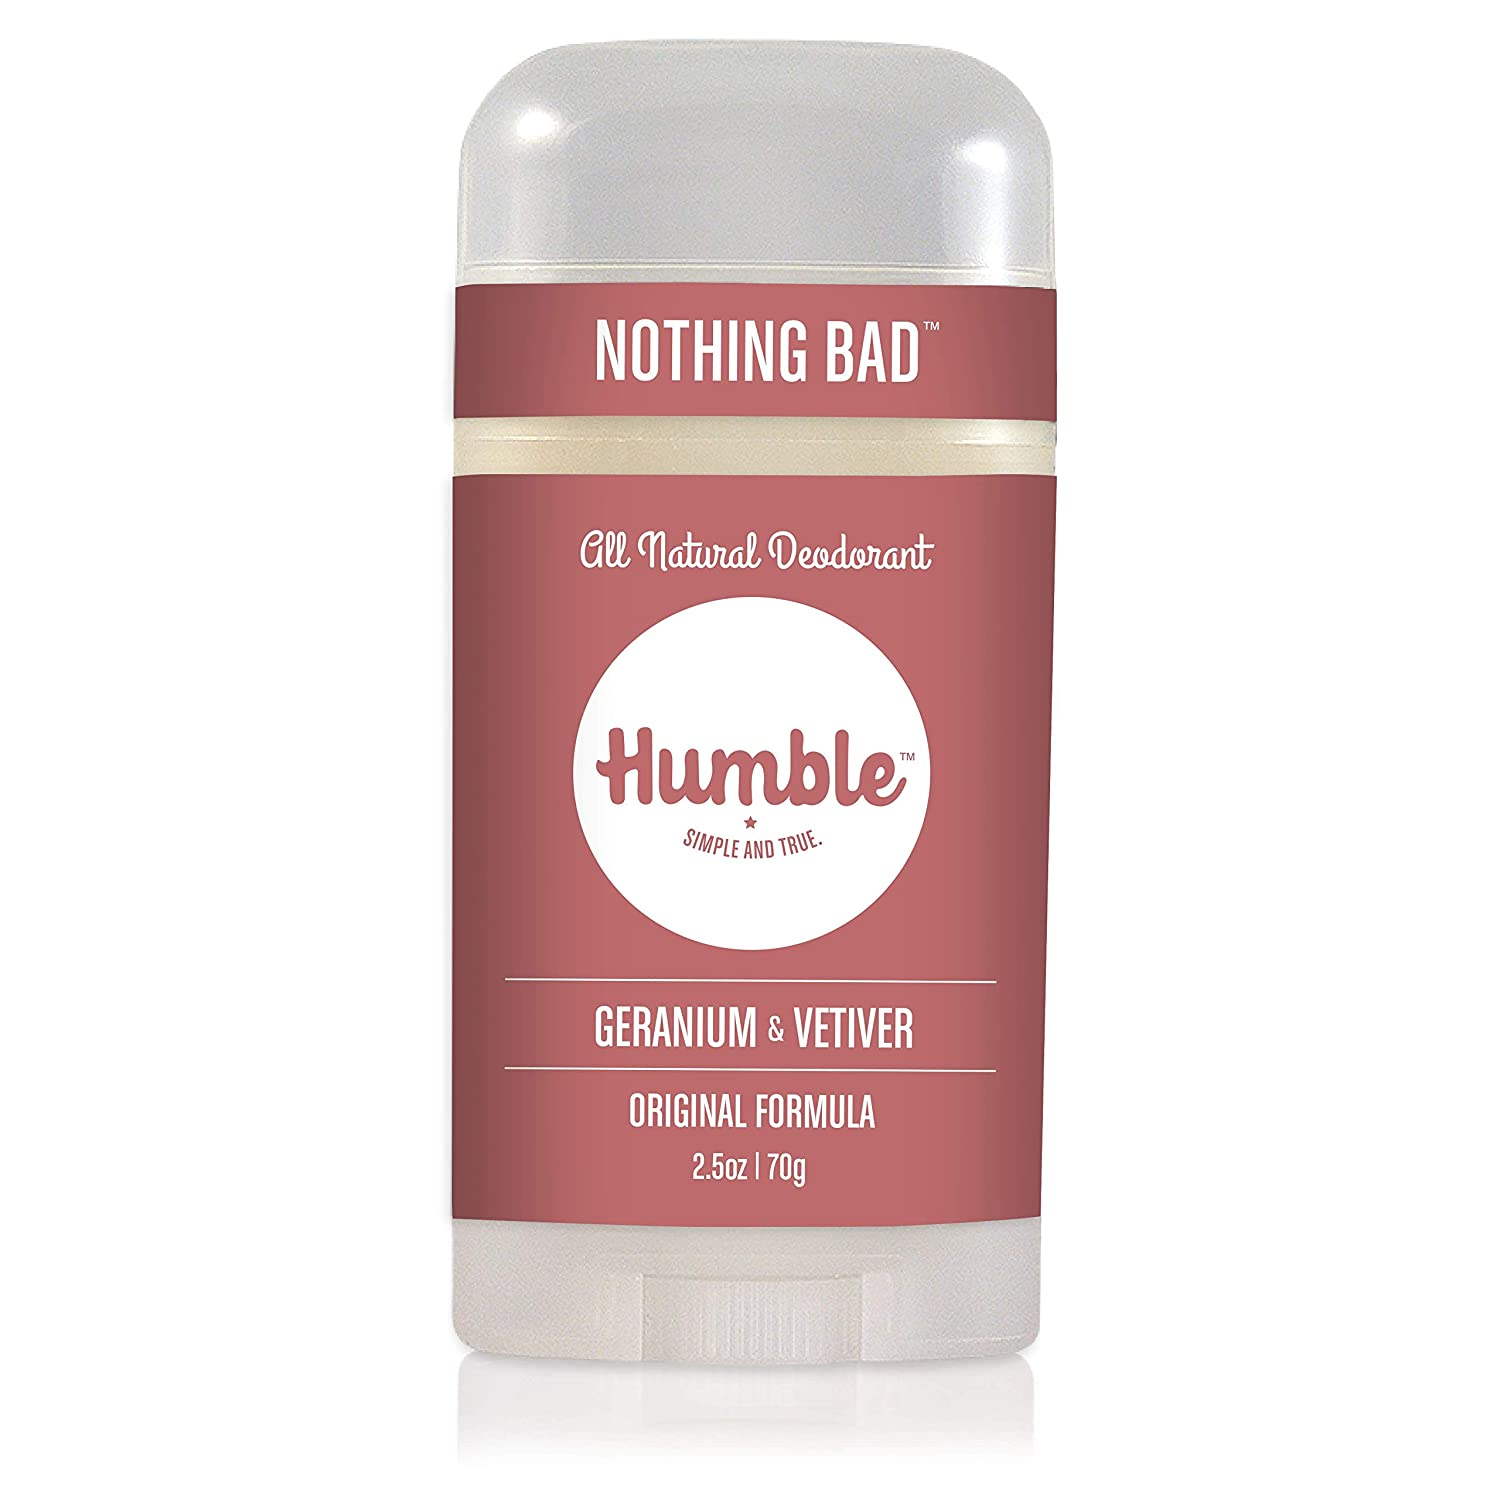 Humble Brands All Natural Aluminum Free Deodorant Stick for Women and Men, Lasts All Day, Safe, and Certified Cruelty Free, Geranium and Vetiver, Pack of 1